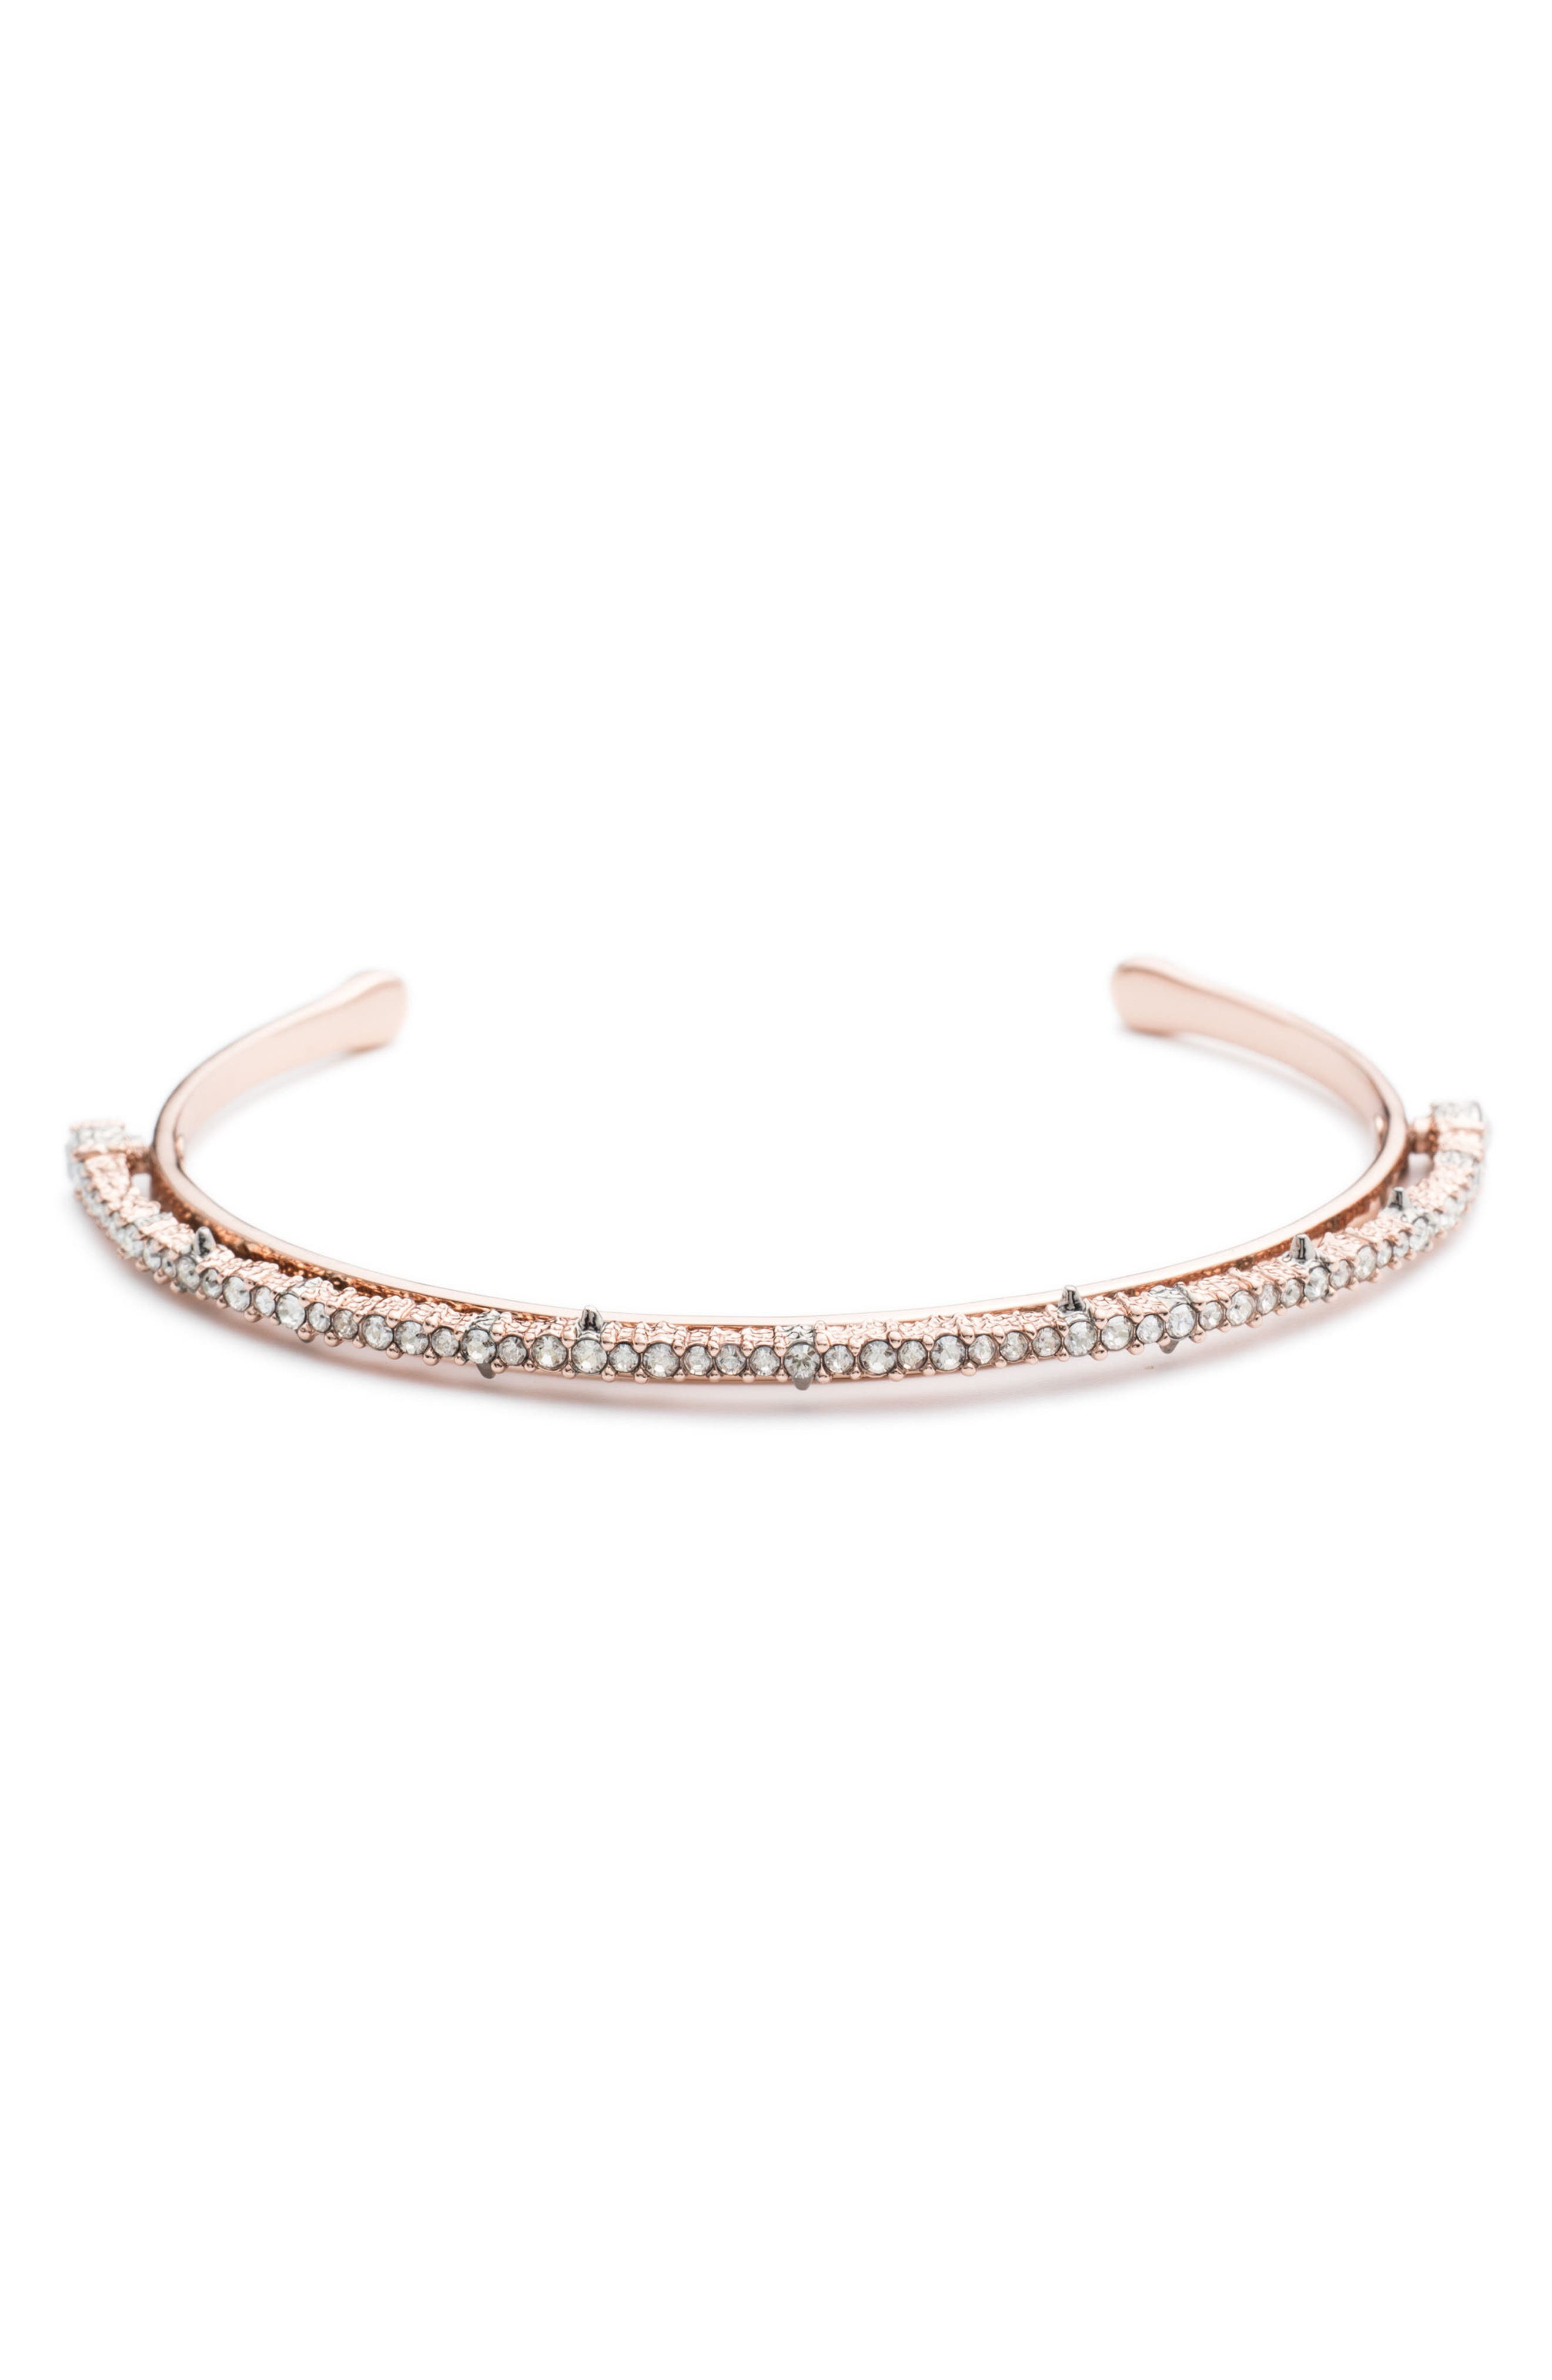 Crystal Lace Orbiting Wrist Cuff,                             Main thumbnail 1, color,                             ROSE GOLD